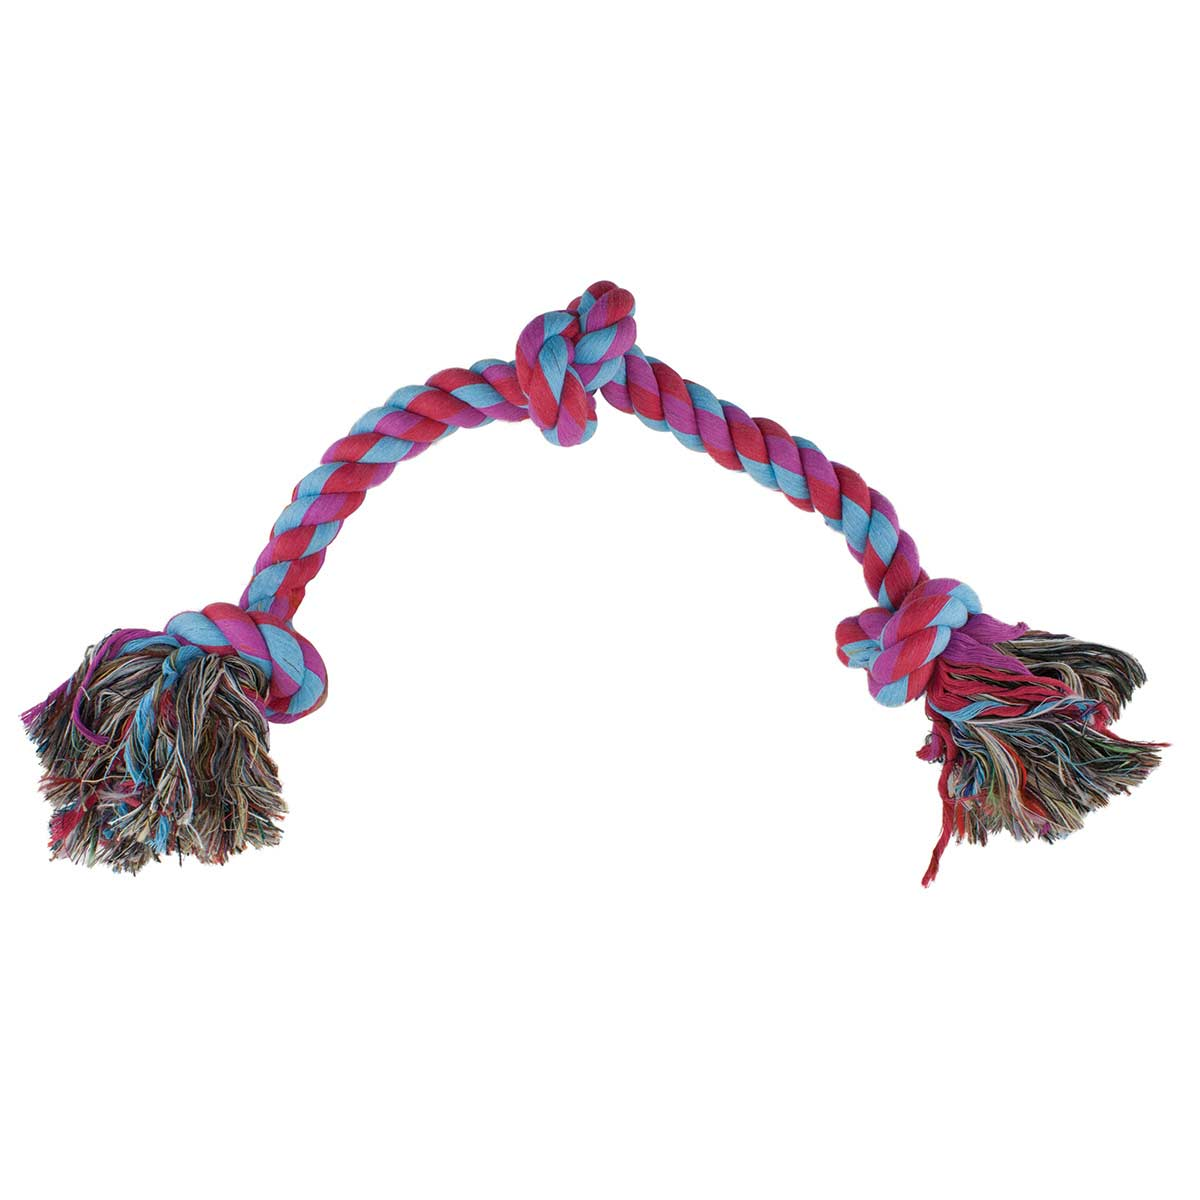 Assorted Colors - Mammoth Medium 3 Knot Colored Rope Tug Toy for Dogs